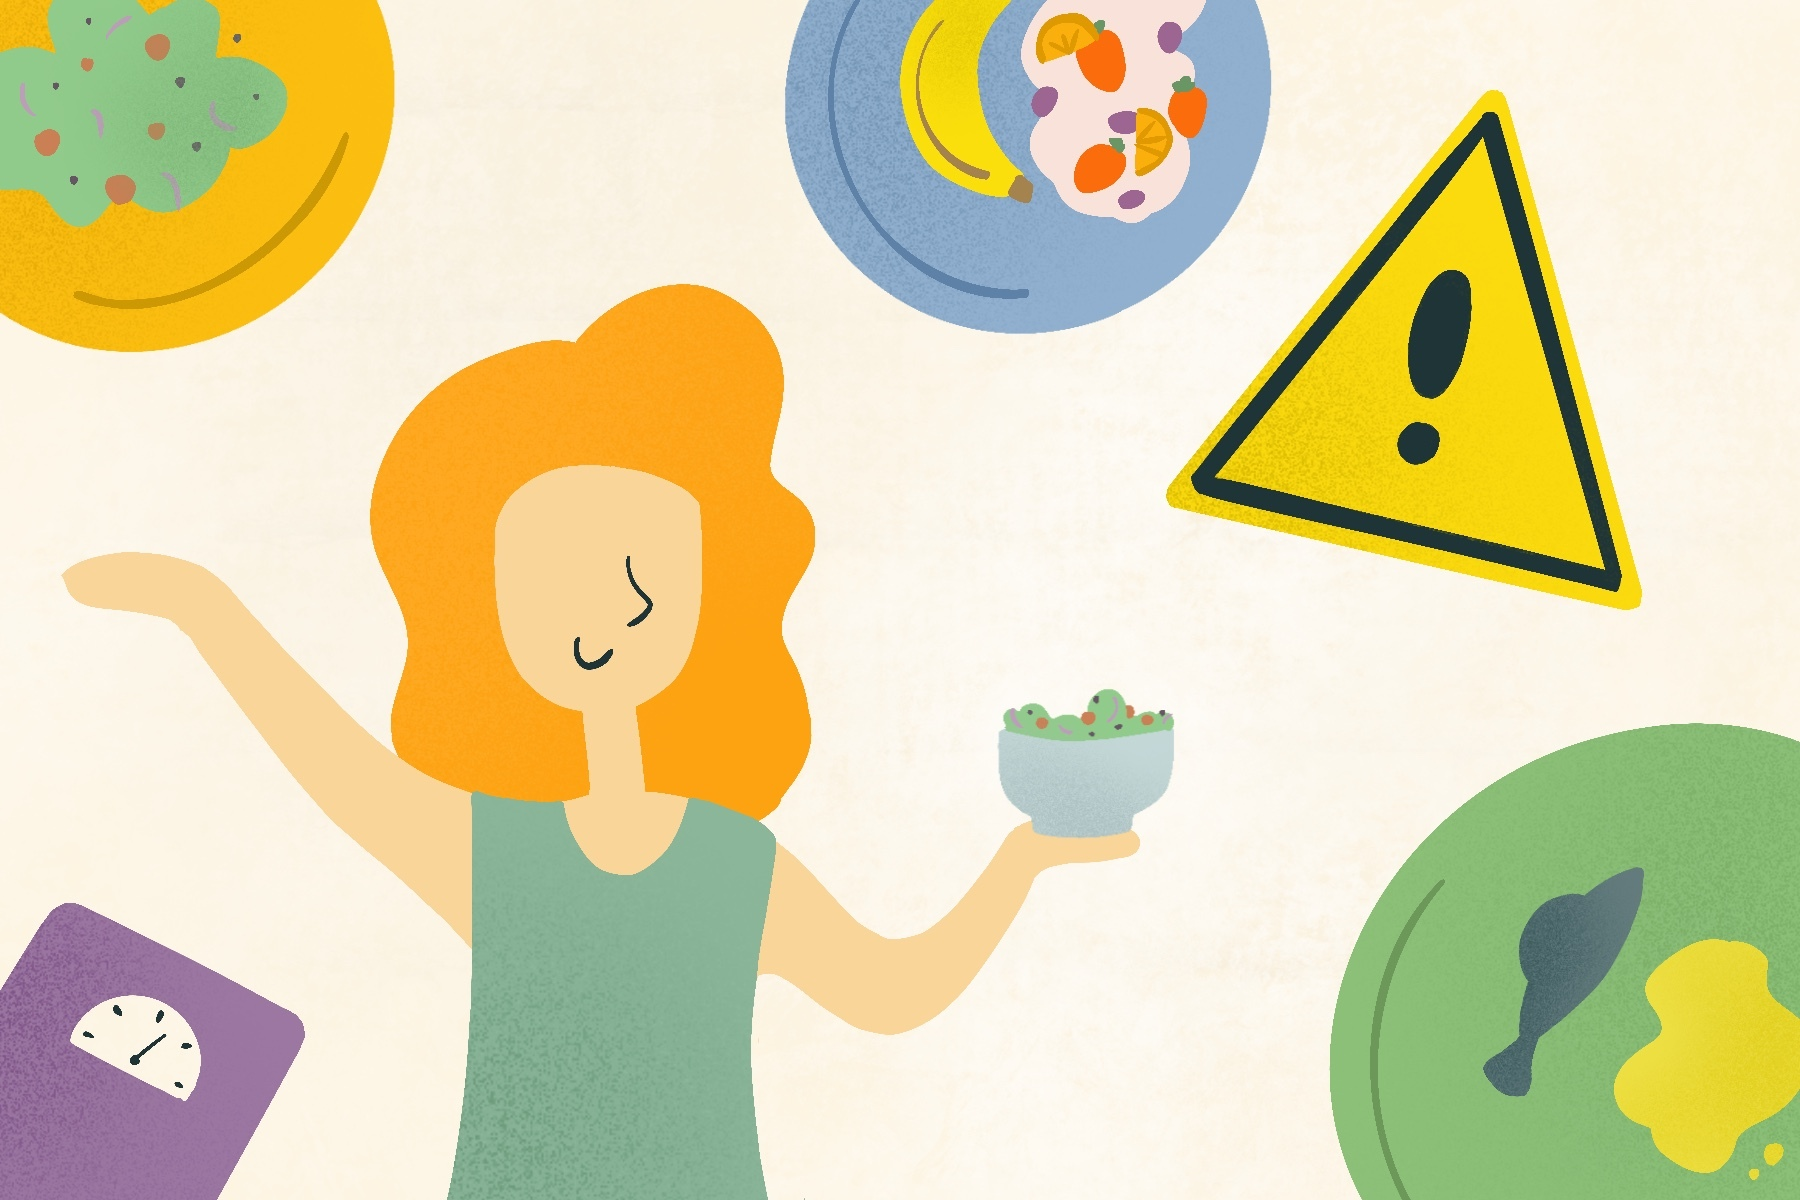 An illustration of food dangers for an article about the hazards of 'What I Eat in a Day' videos. (Illustration by Sonja Vasiljeva, San Jose State University)